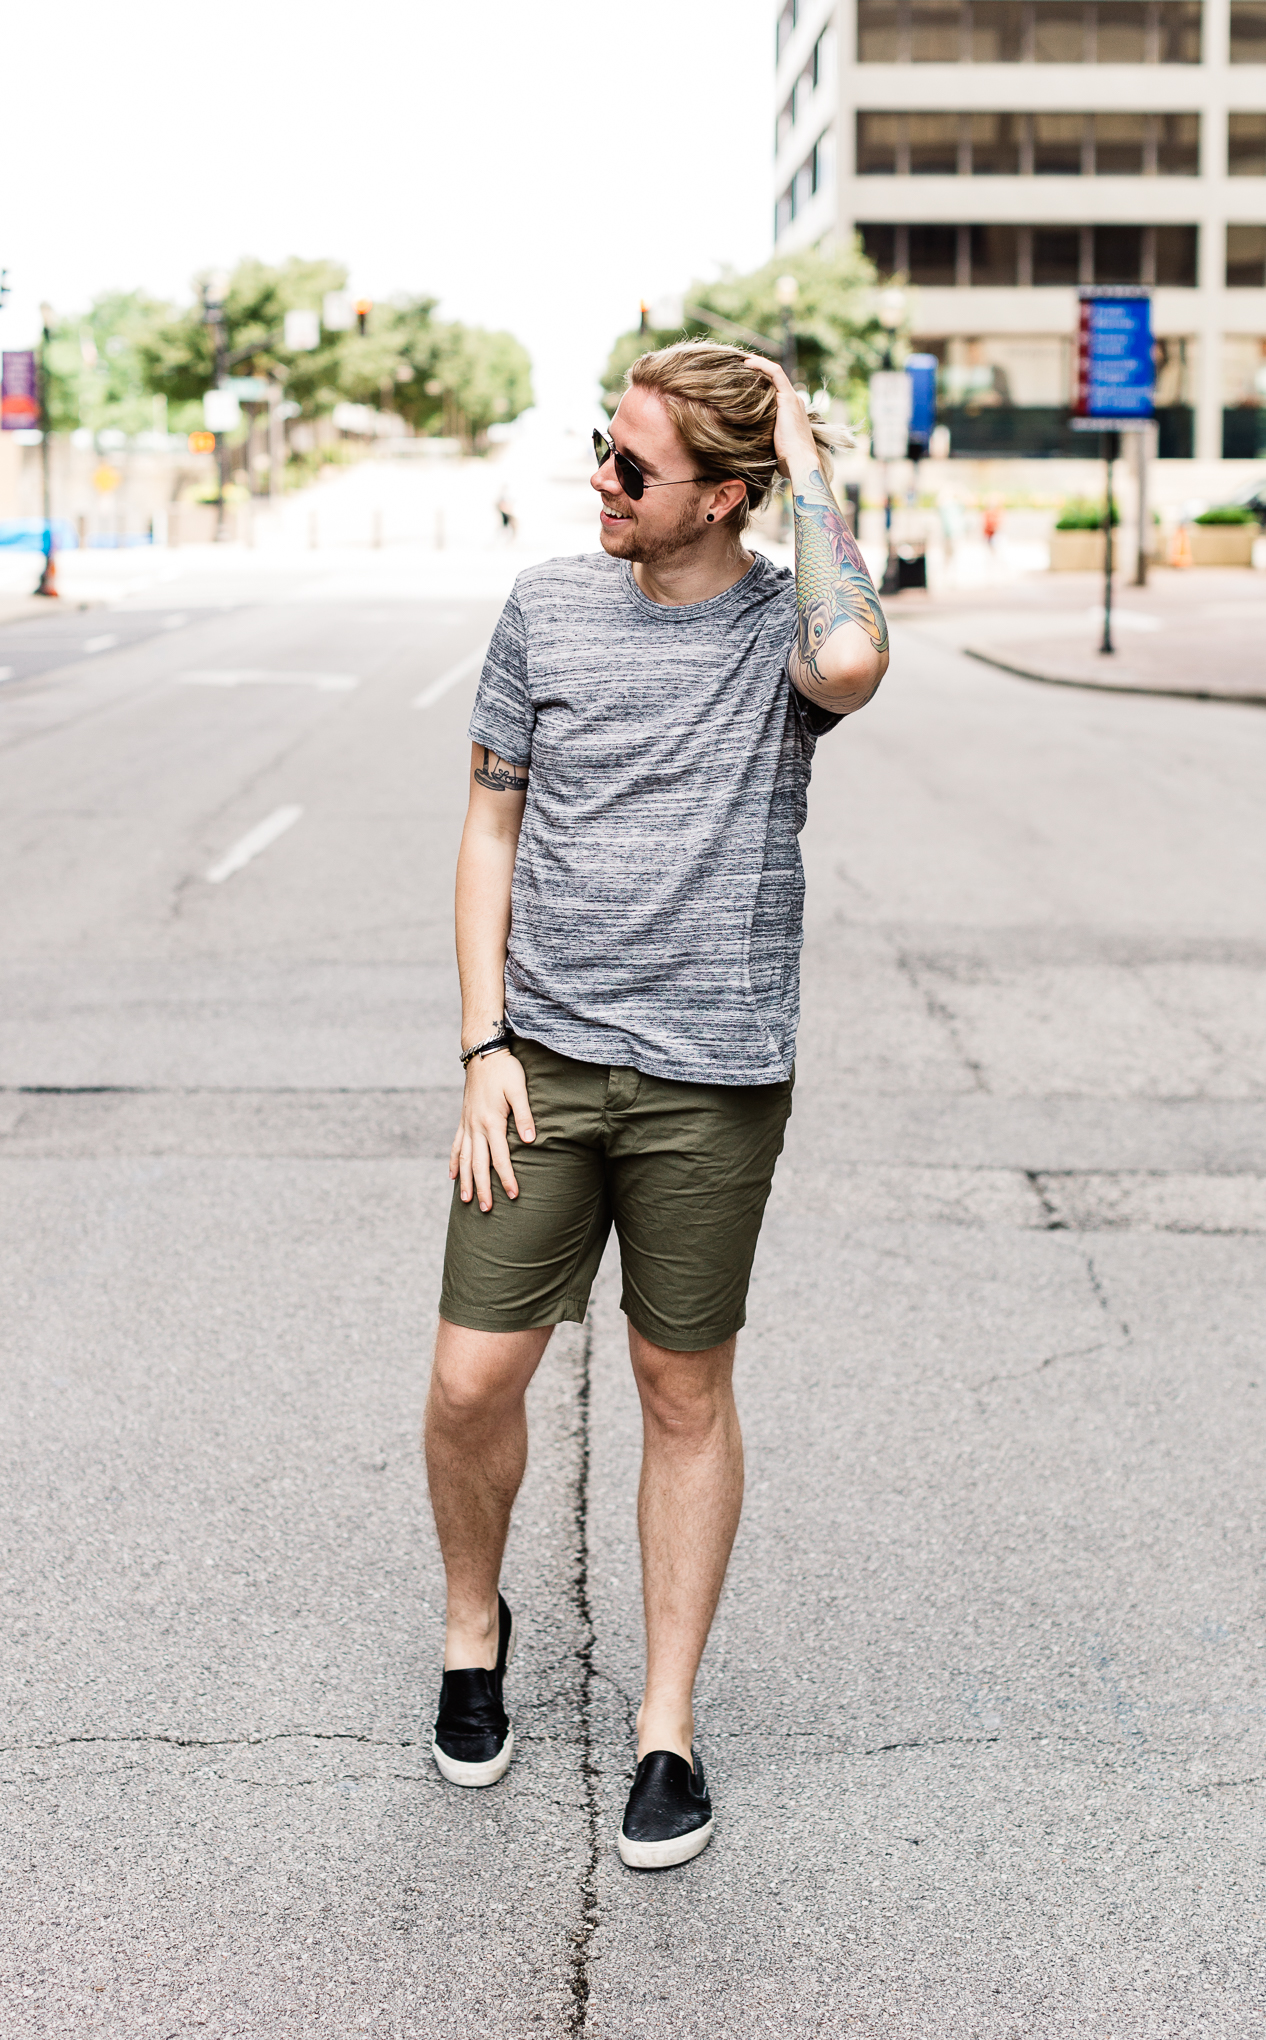 hm mens clothing, mens personal style blog, mens fashion blog, alternative apparel, olive shorts